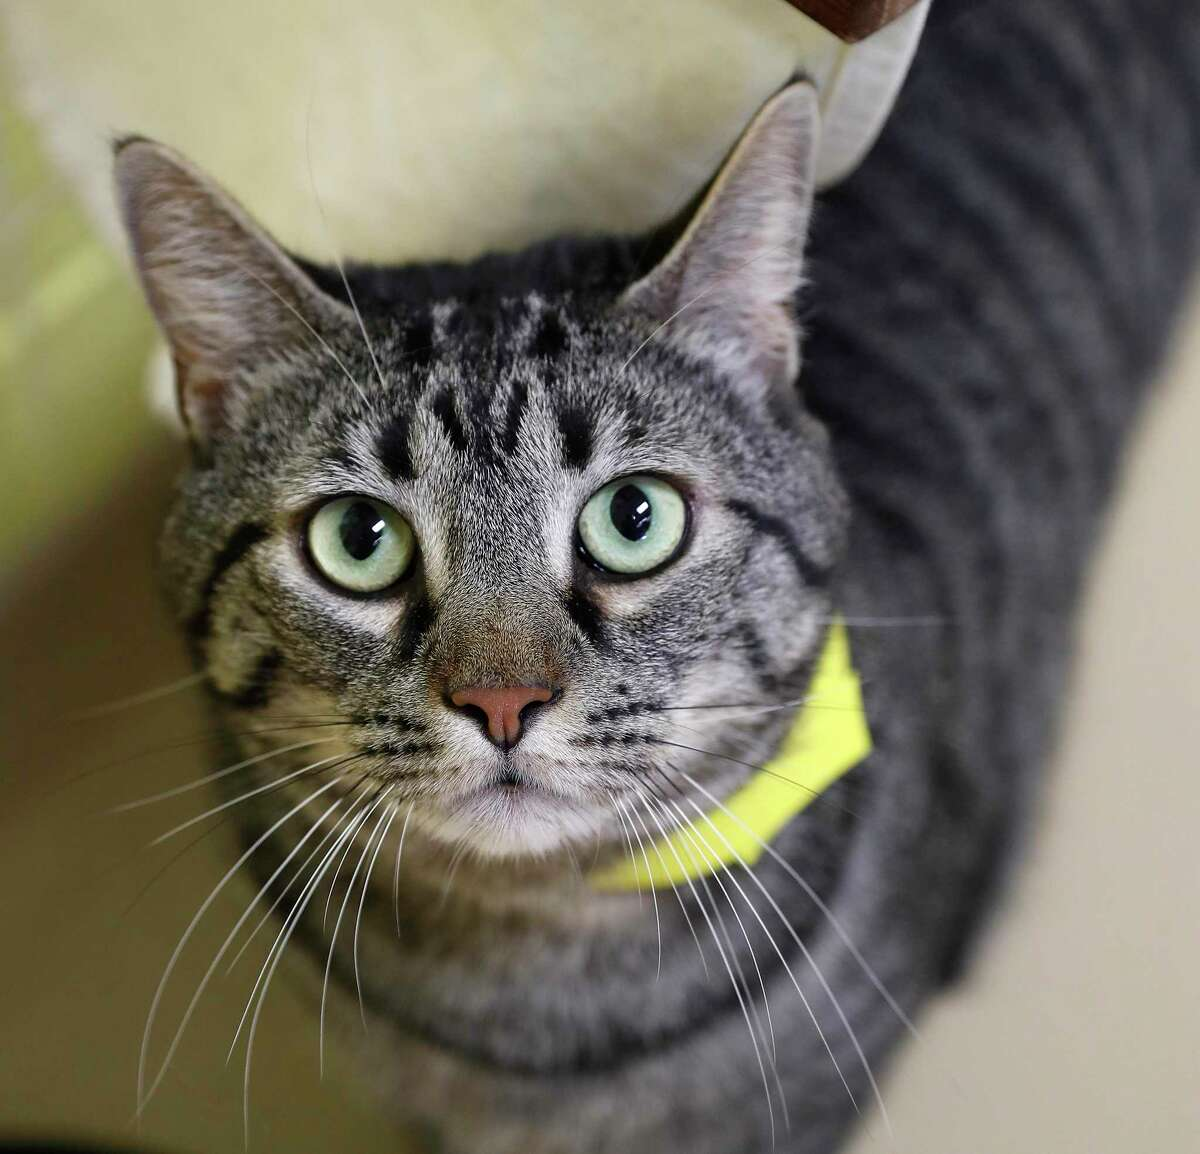 Hannibal (A552171) is a 4-year-old, male, brown tabby domestic shorthair available for adoption from the Harris County Animal Shelter, in Houston,Tuesday, March 17, 2020. Hannibal was surrendered by his owners, but is reported to love men and women, is litterbox trained and travels well in a carrier.